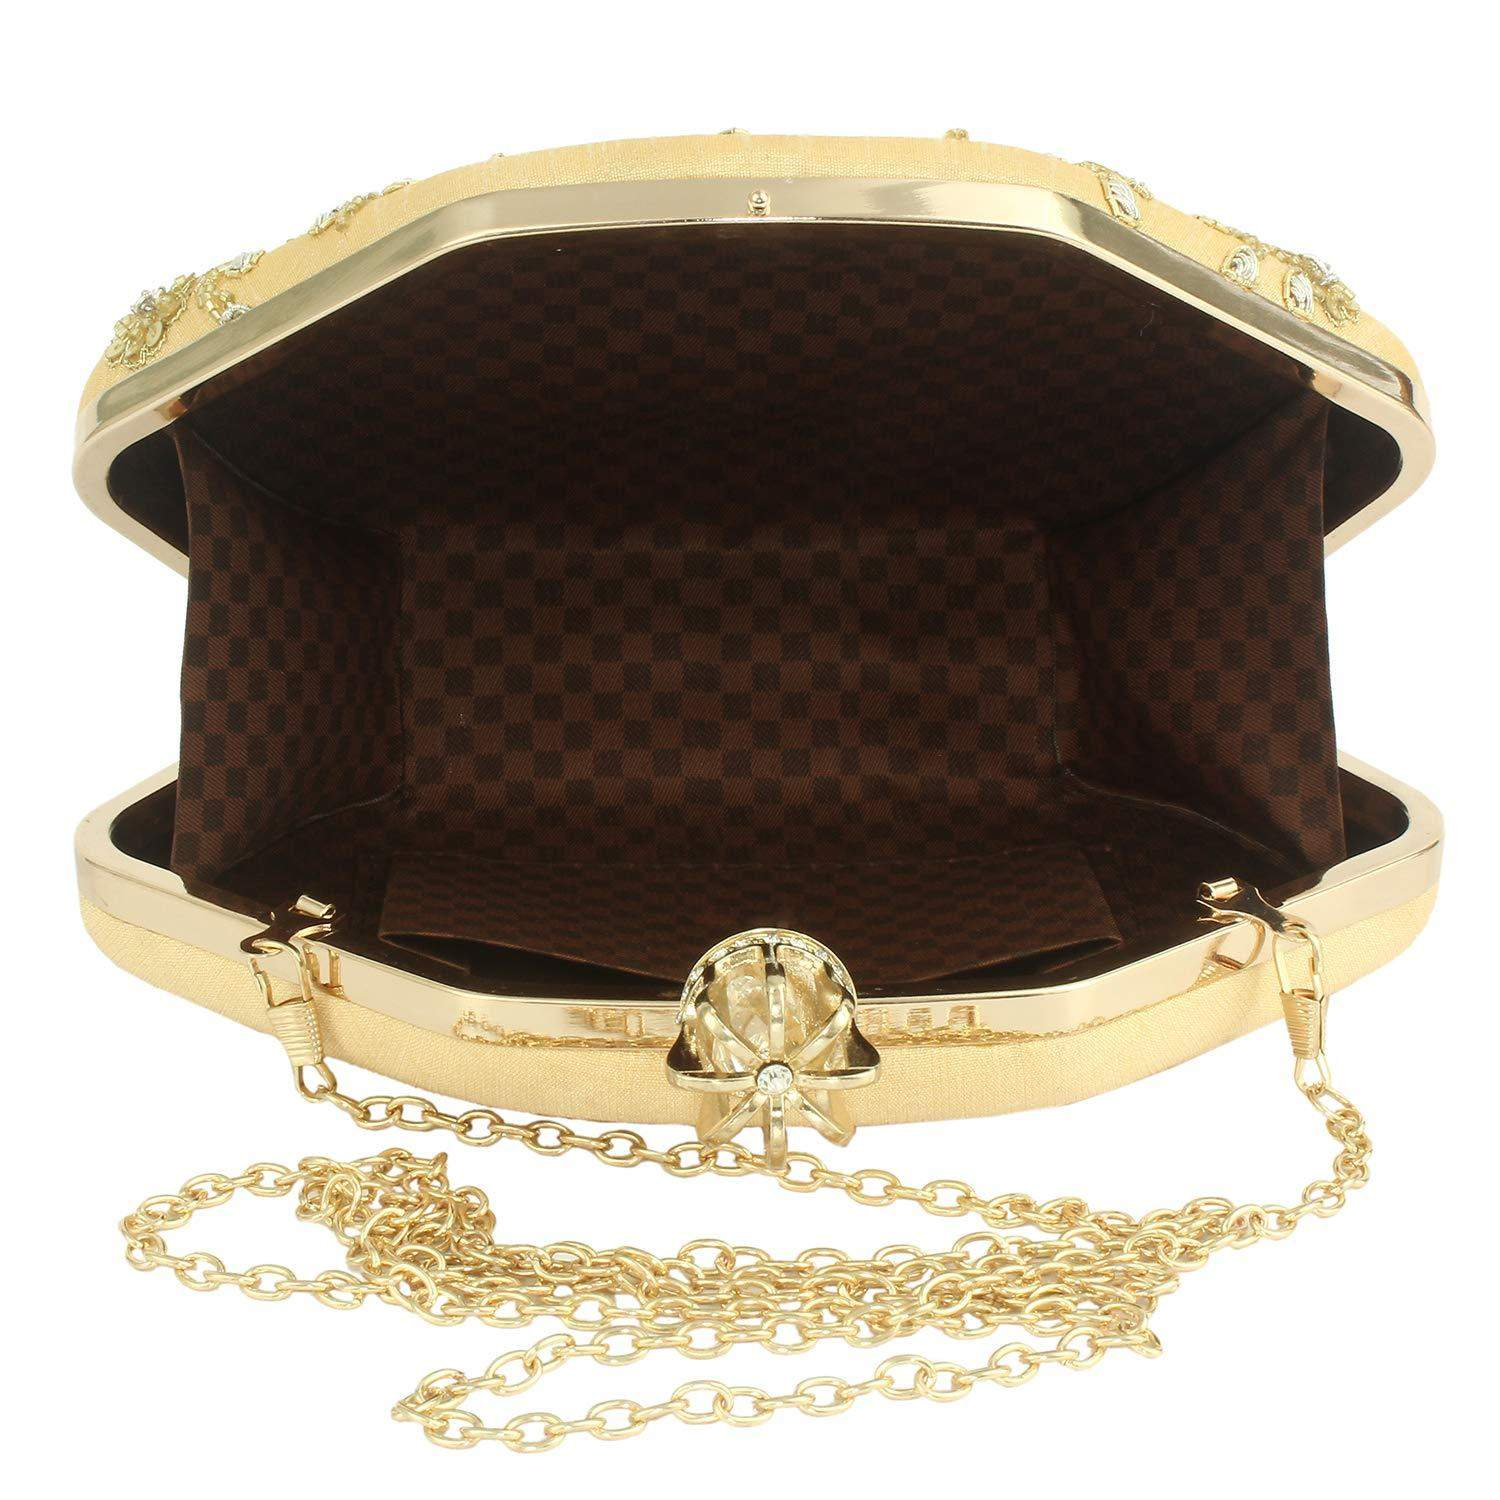 Ethnic Beads and Pearls Clutch (Gold) - Bagaholics Gift